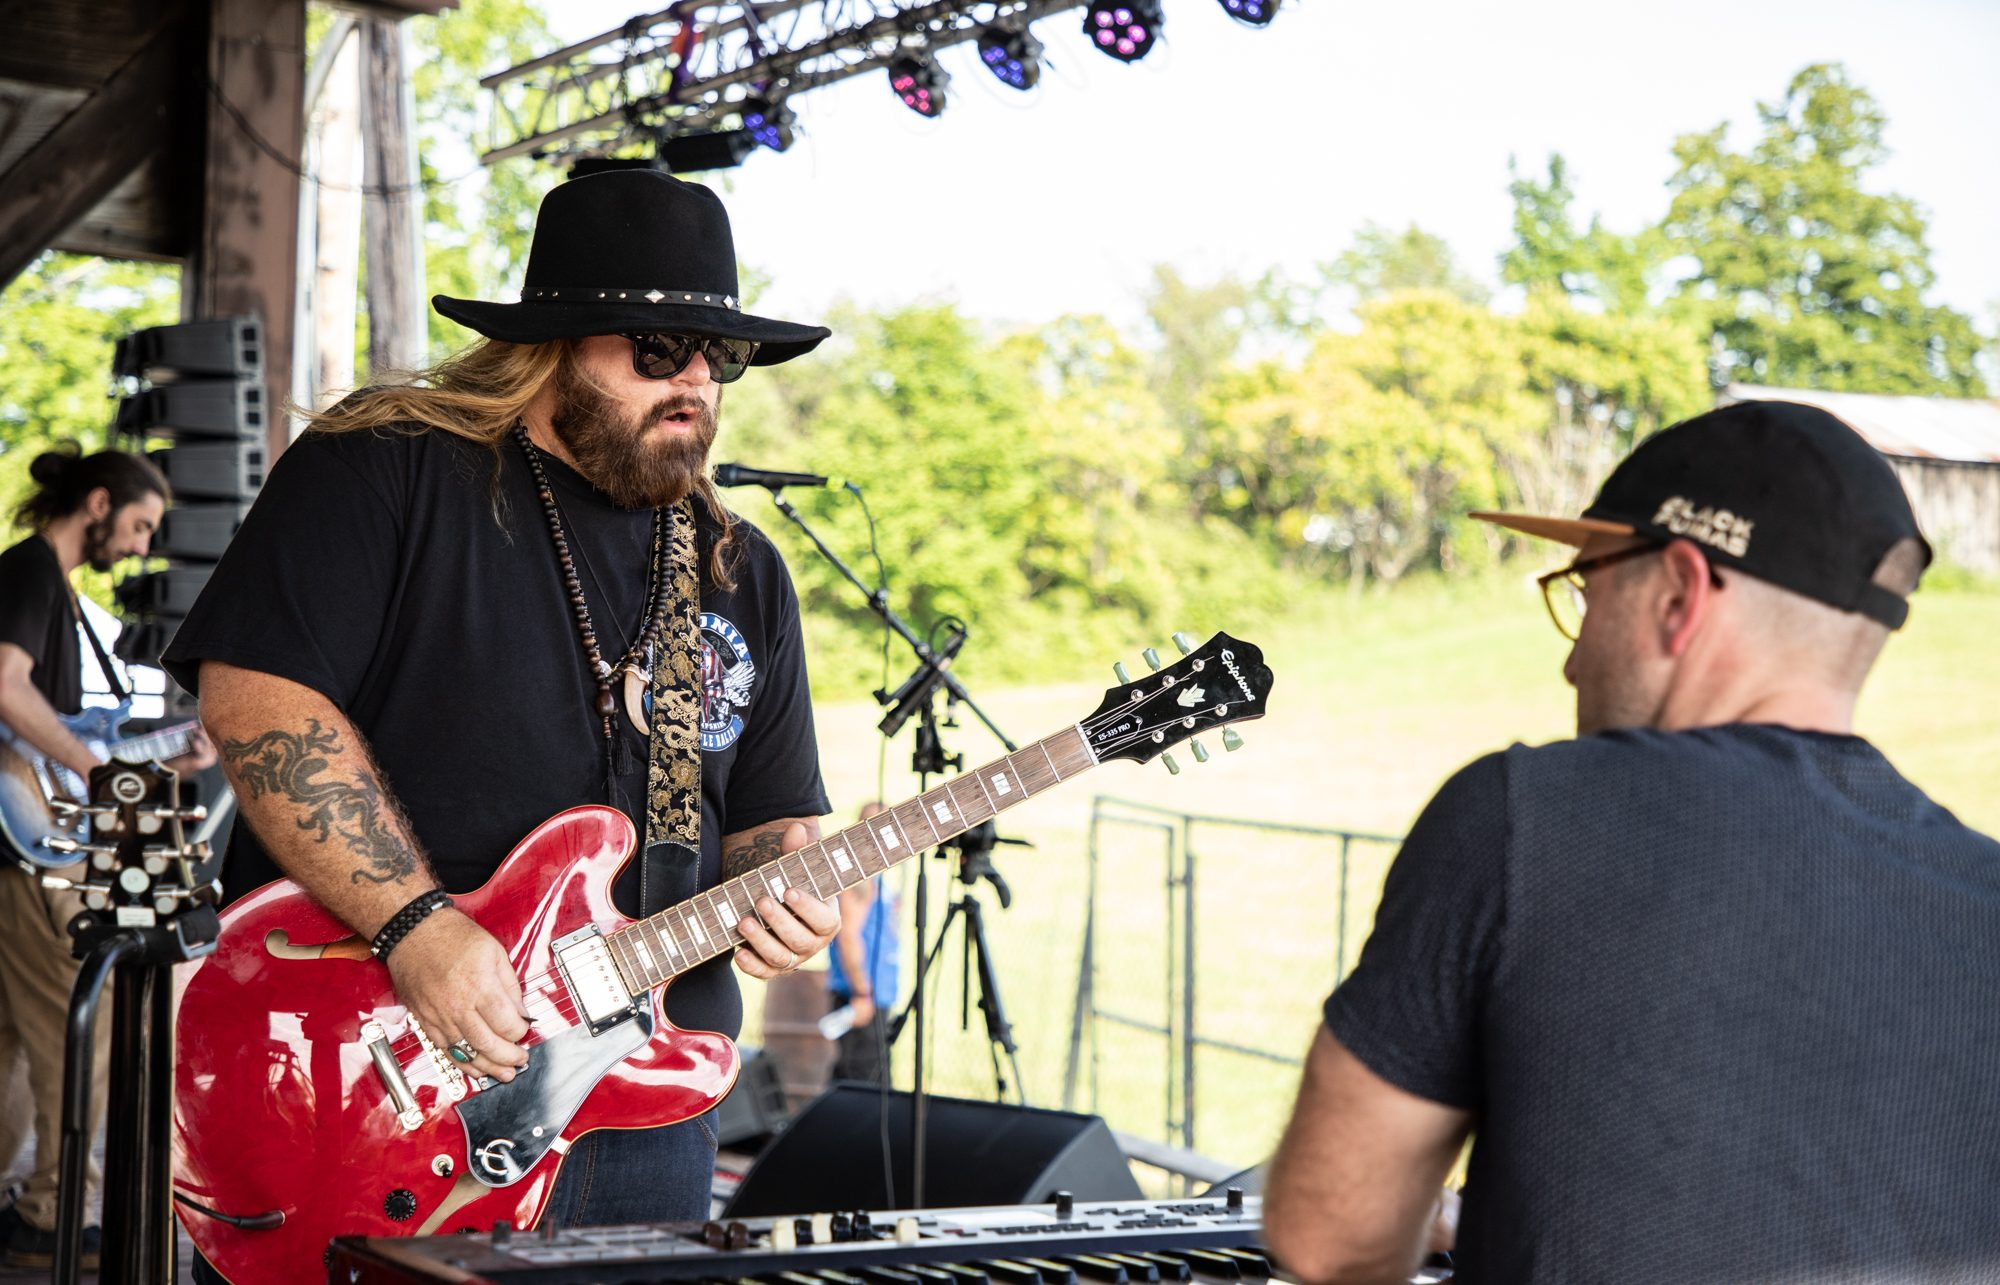 GALLERY: Sly Fox and the Hustlers at Harley Rendezvous 2021